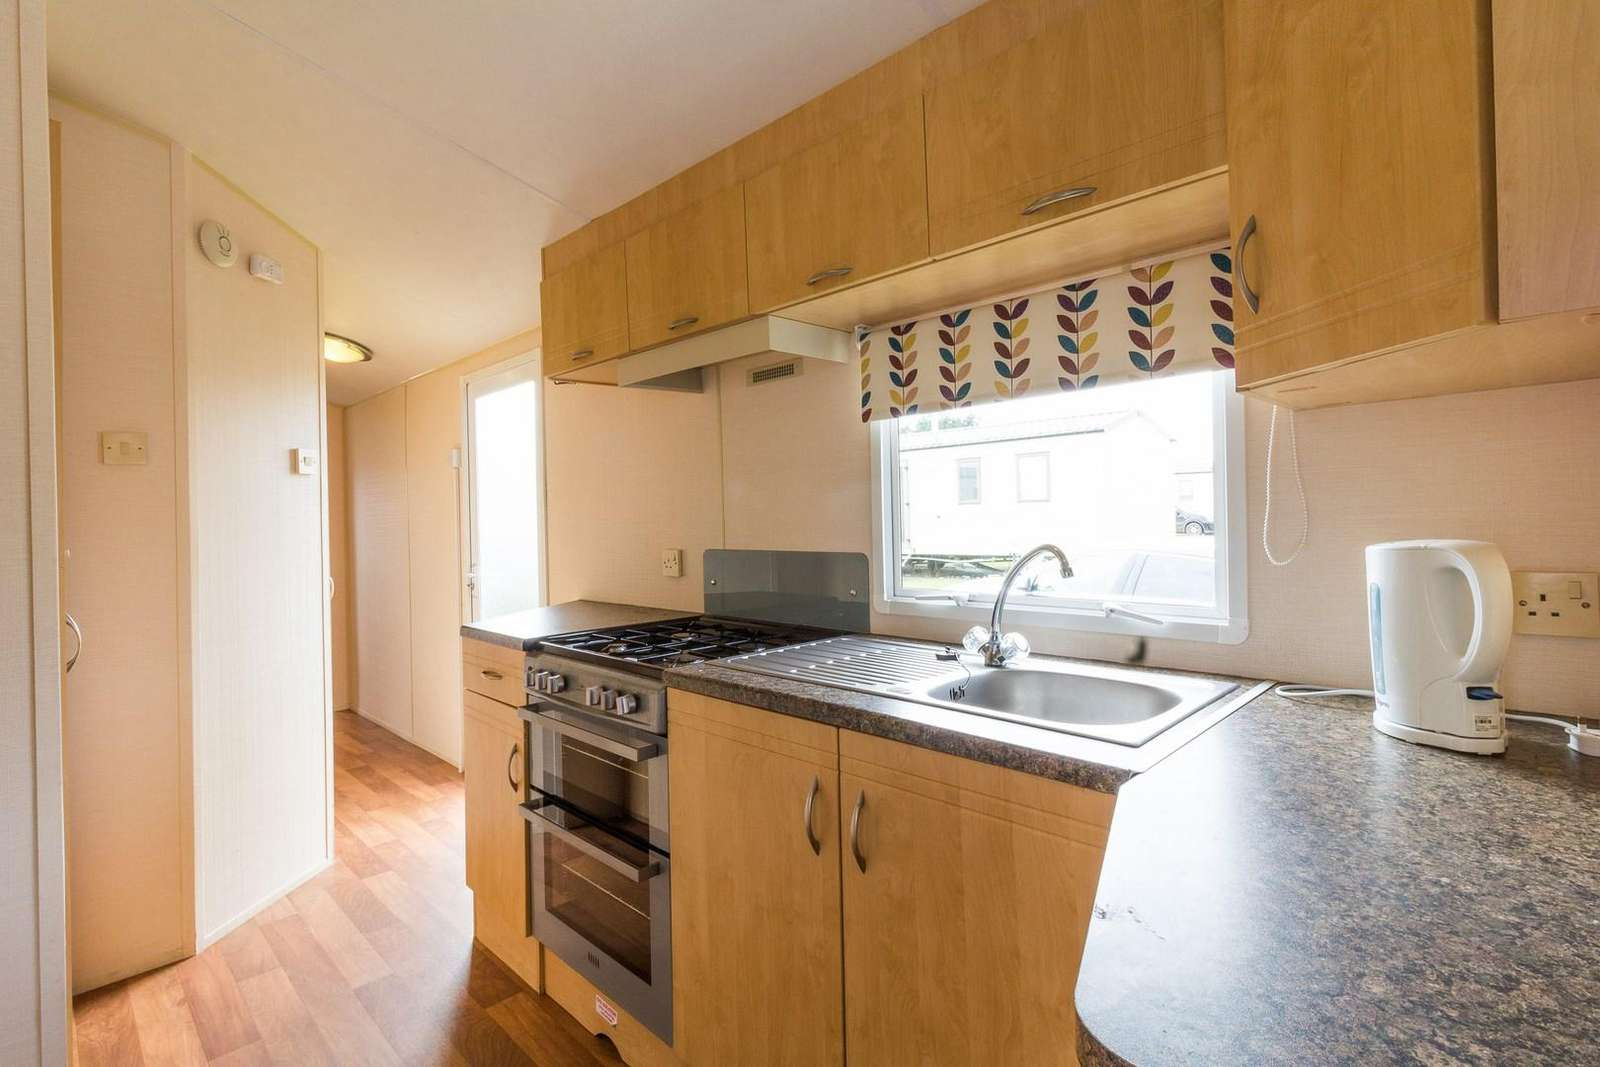 A well equipped kitchen, perfect for self-catering holidays!